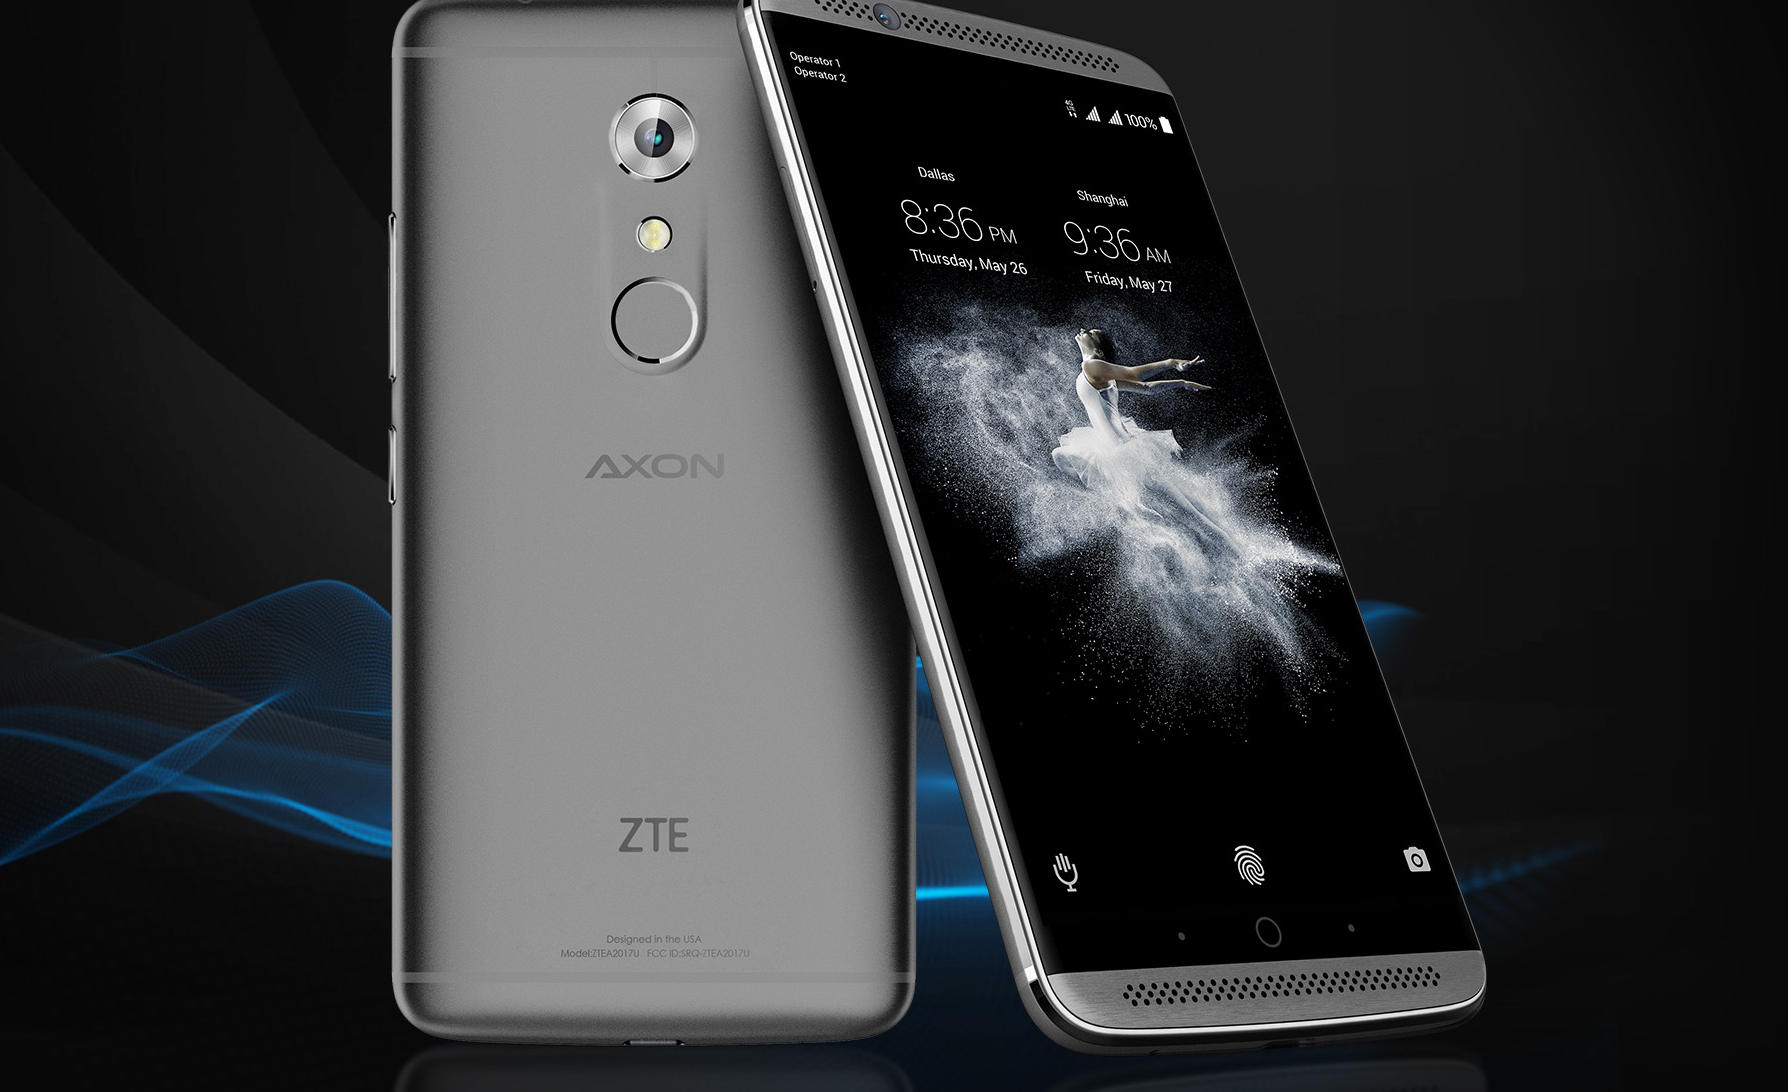 Everything zte axon 2016 download the maps